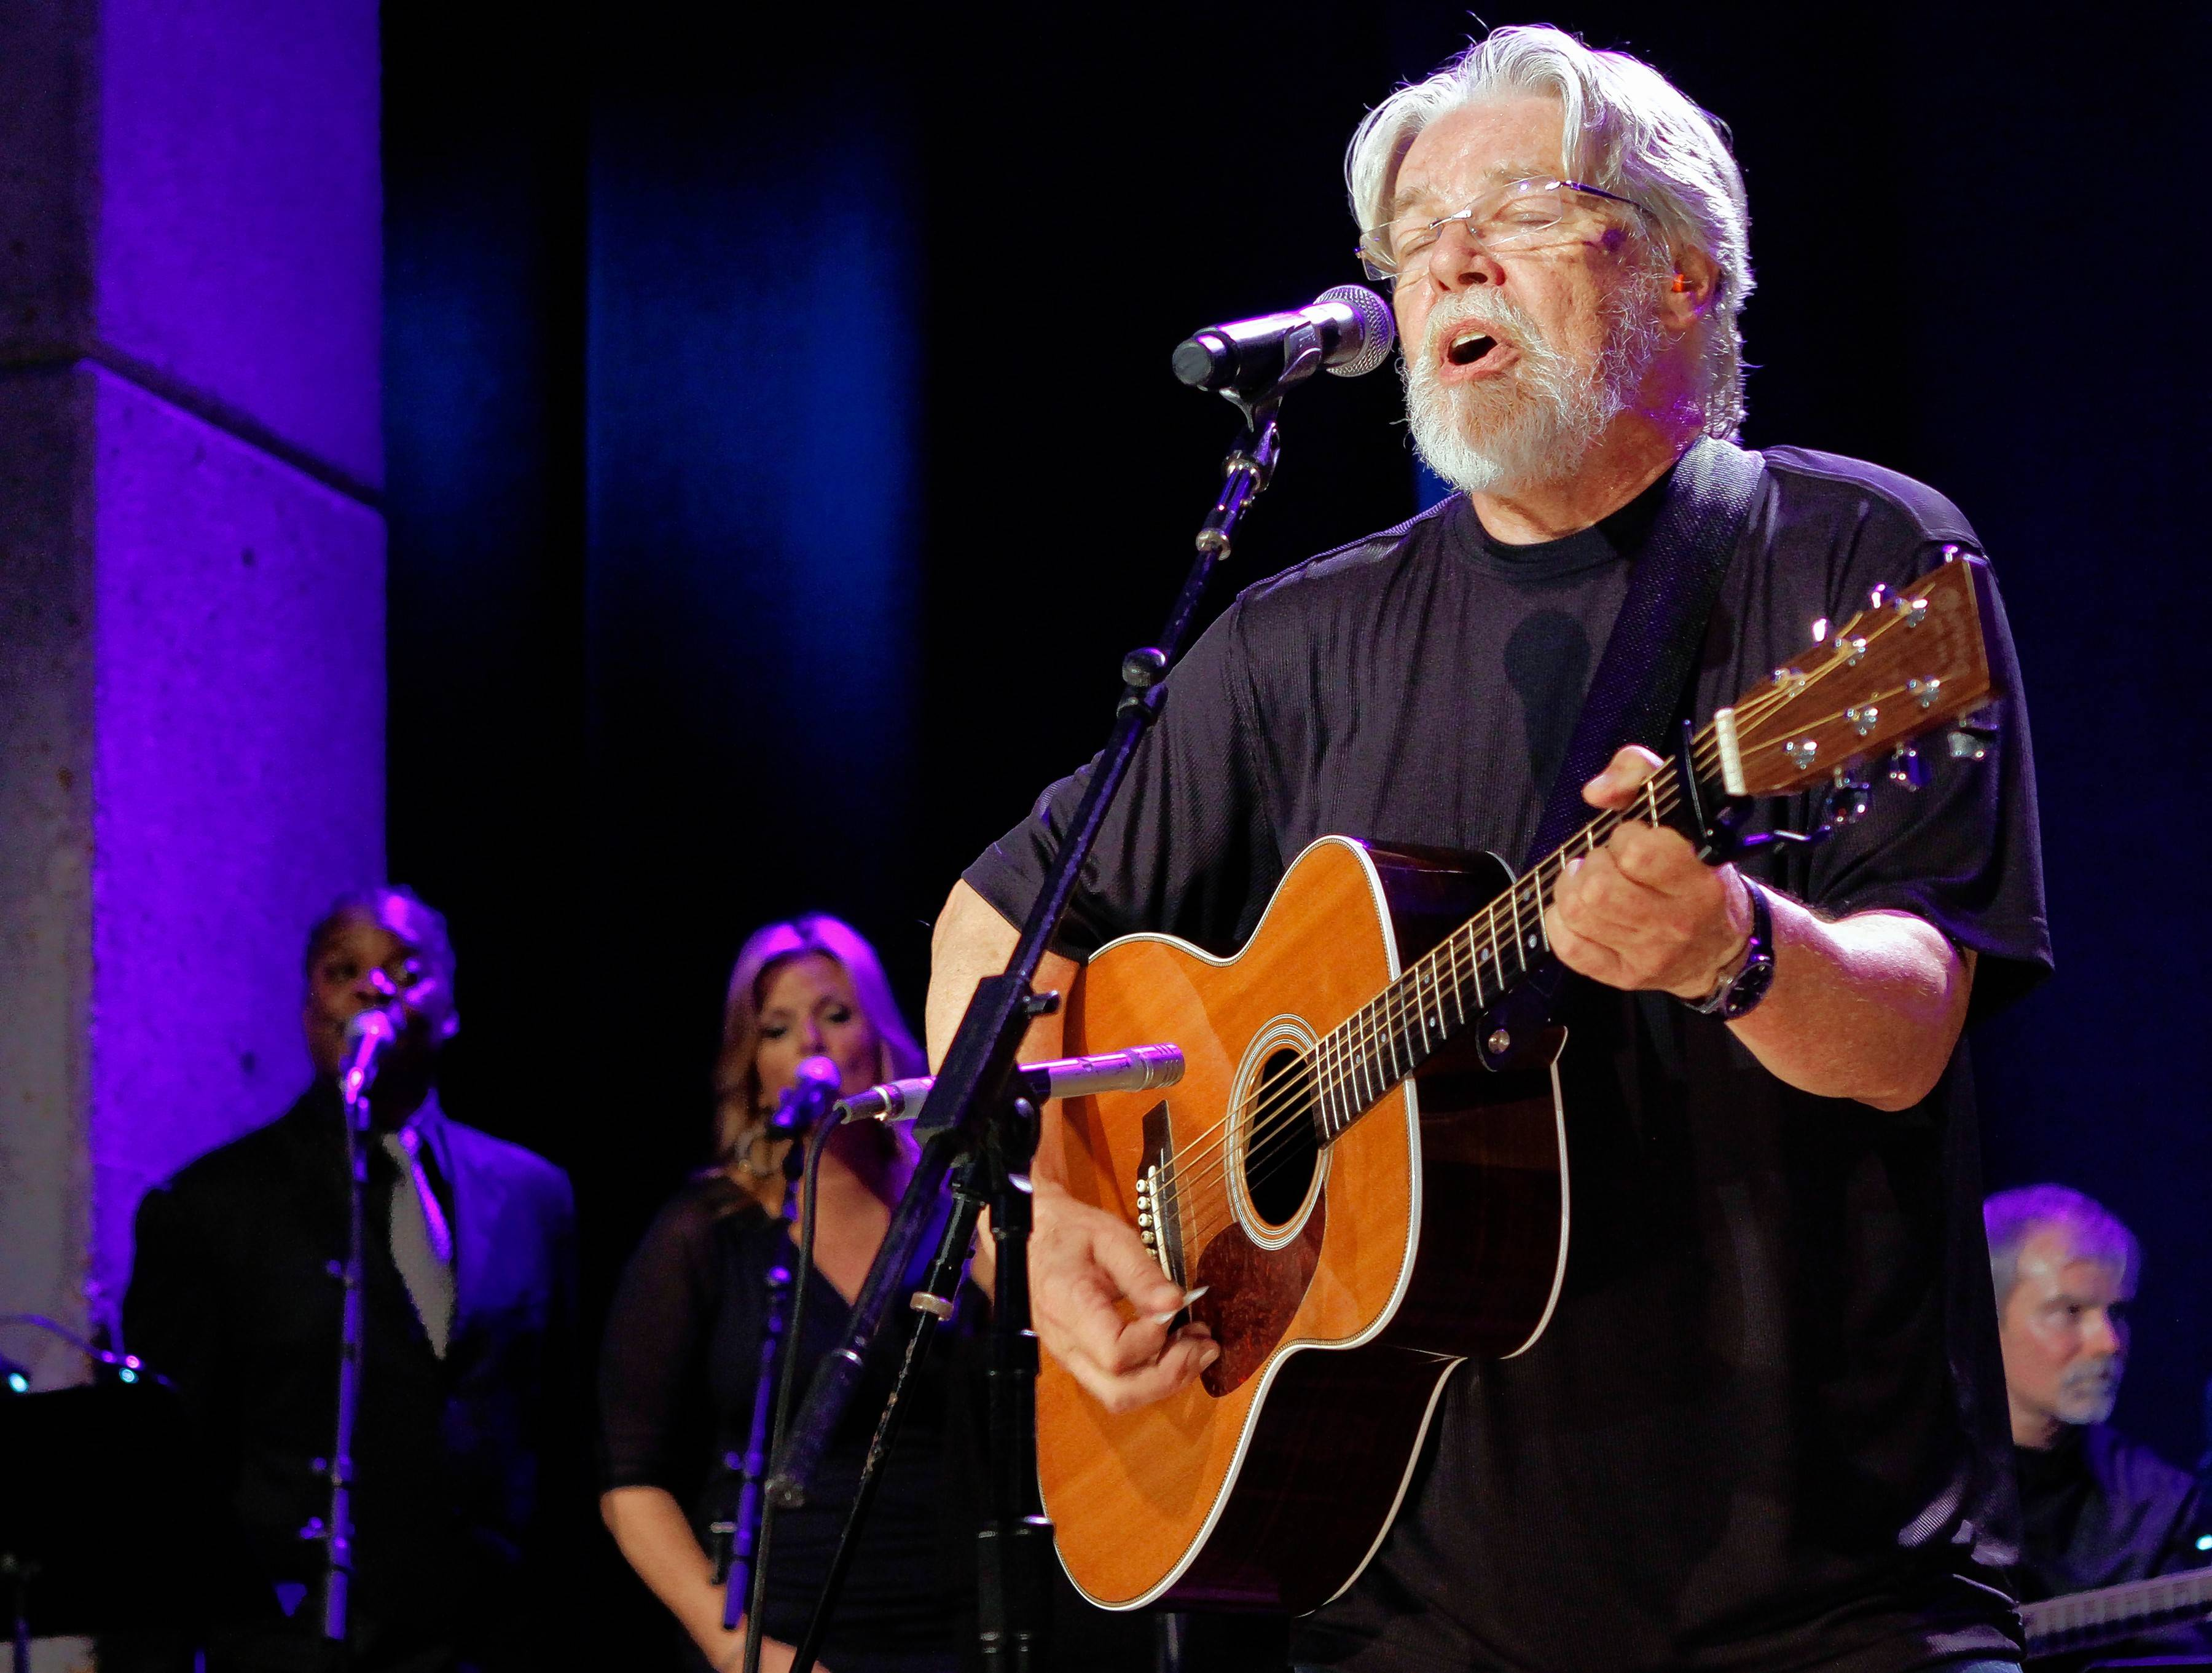 Bob Seger and the Silver Bullet Band play a rescheduled show Friday, Dec. 14, at the Allstate Arena in Rosemont.